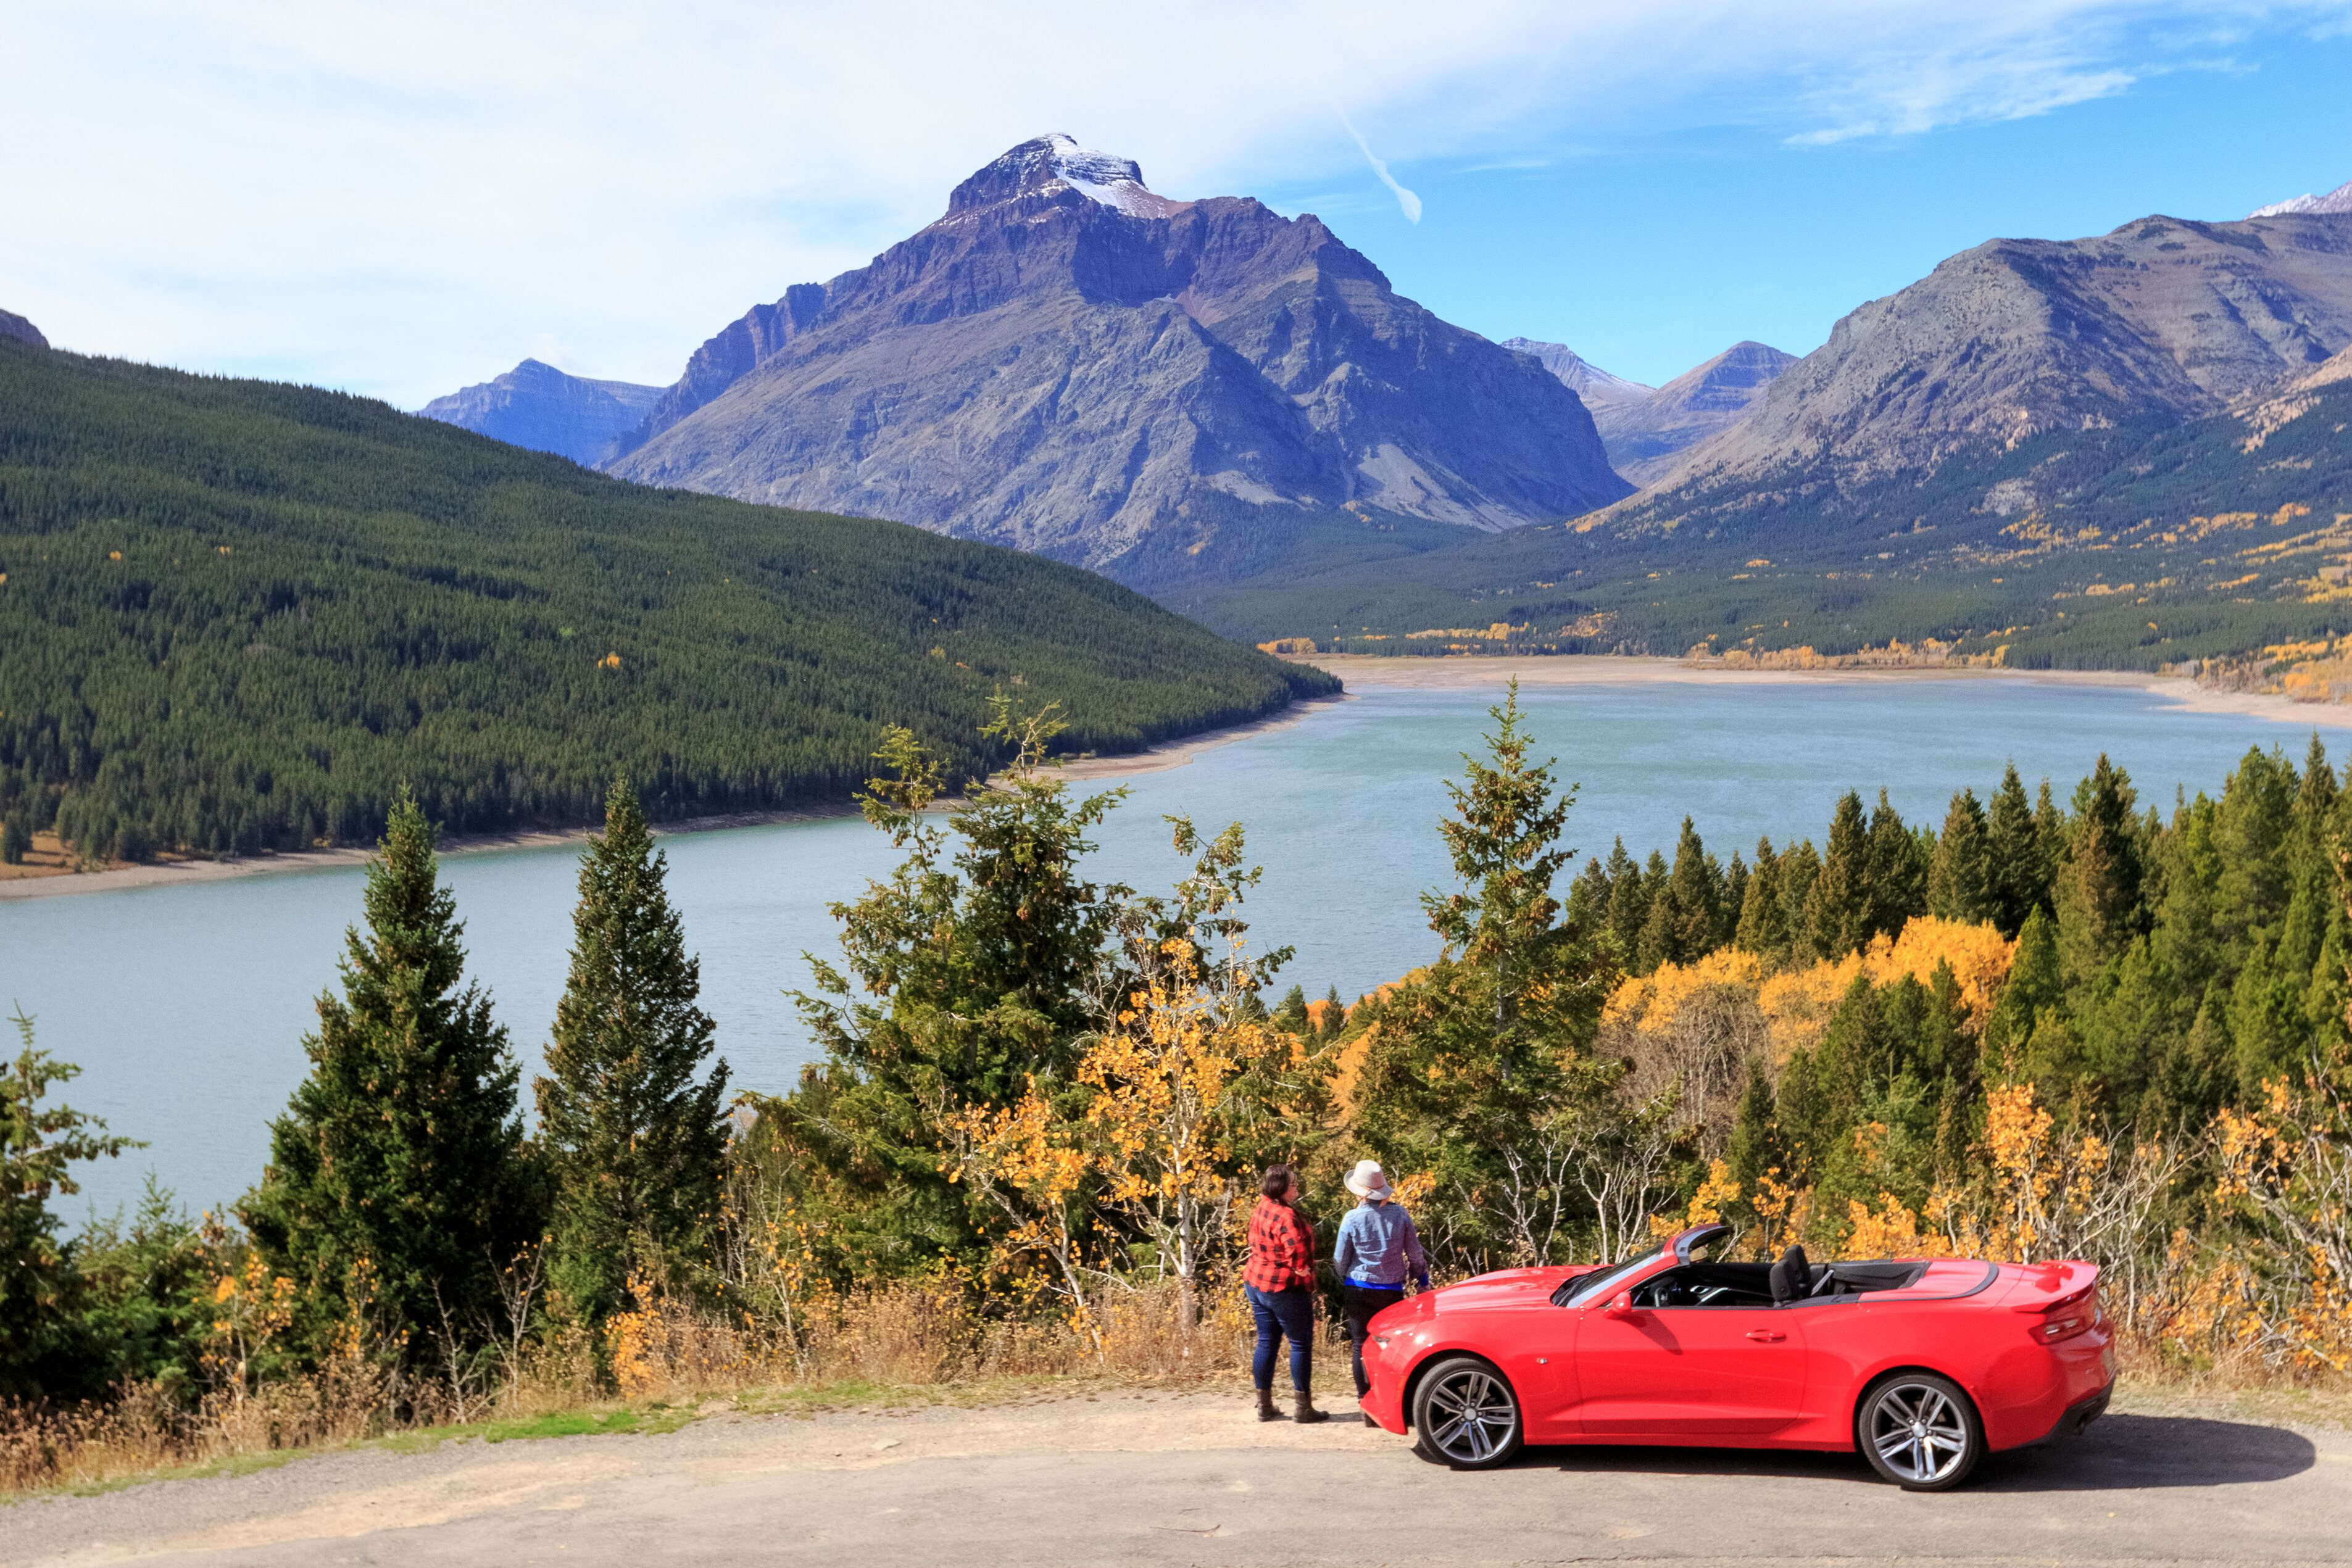 Visitors take in the view at East Glacier, Montana on a beautiful fall day.